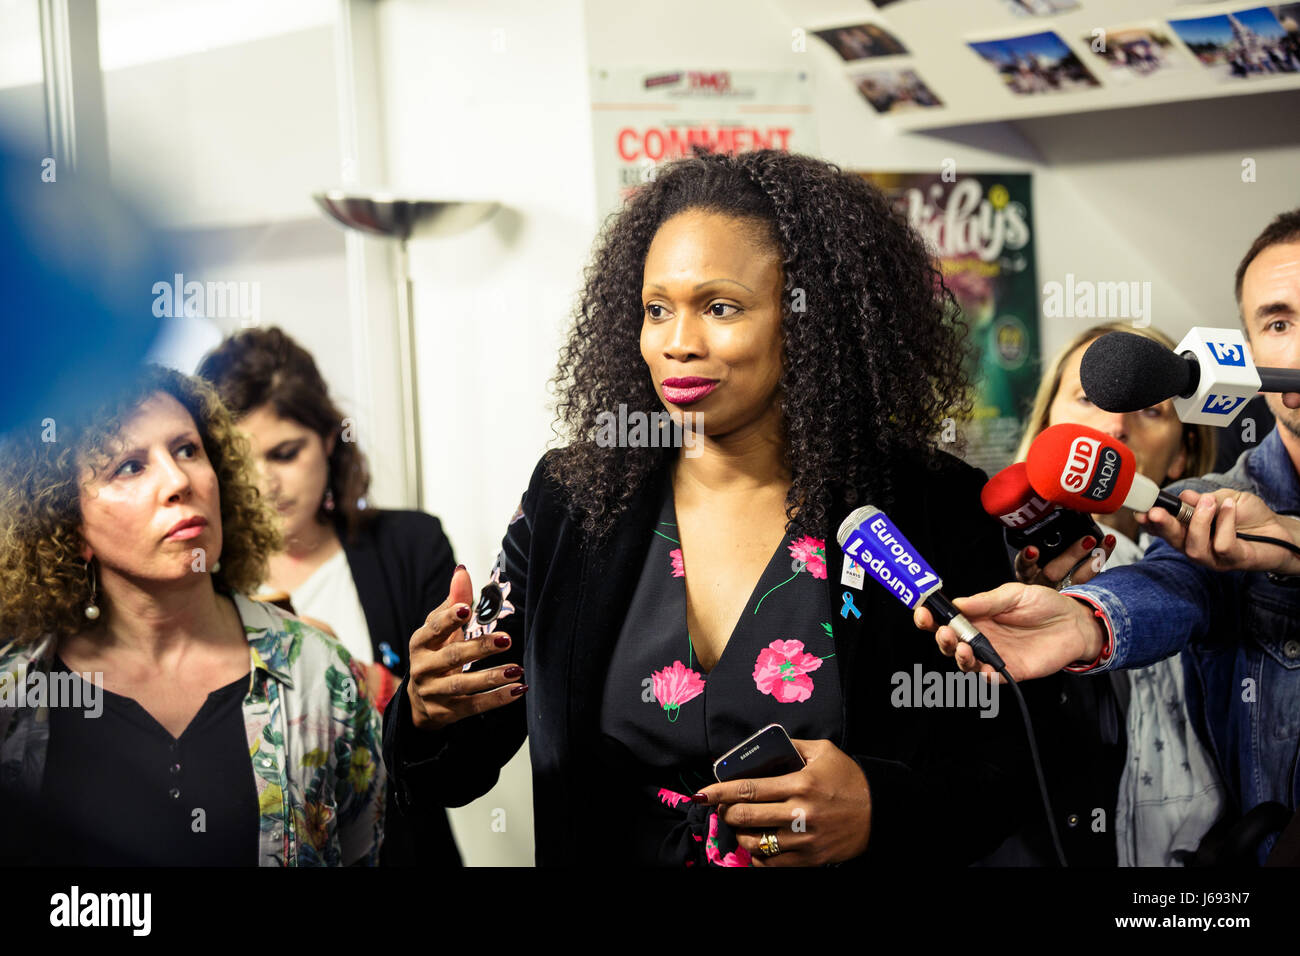 Paul Barlet / Le Pictorium -  Laura Flessel the new french minister of sport -  19/05/2017  -  France / Ile-de-France - Stock Image